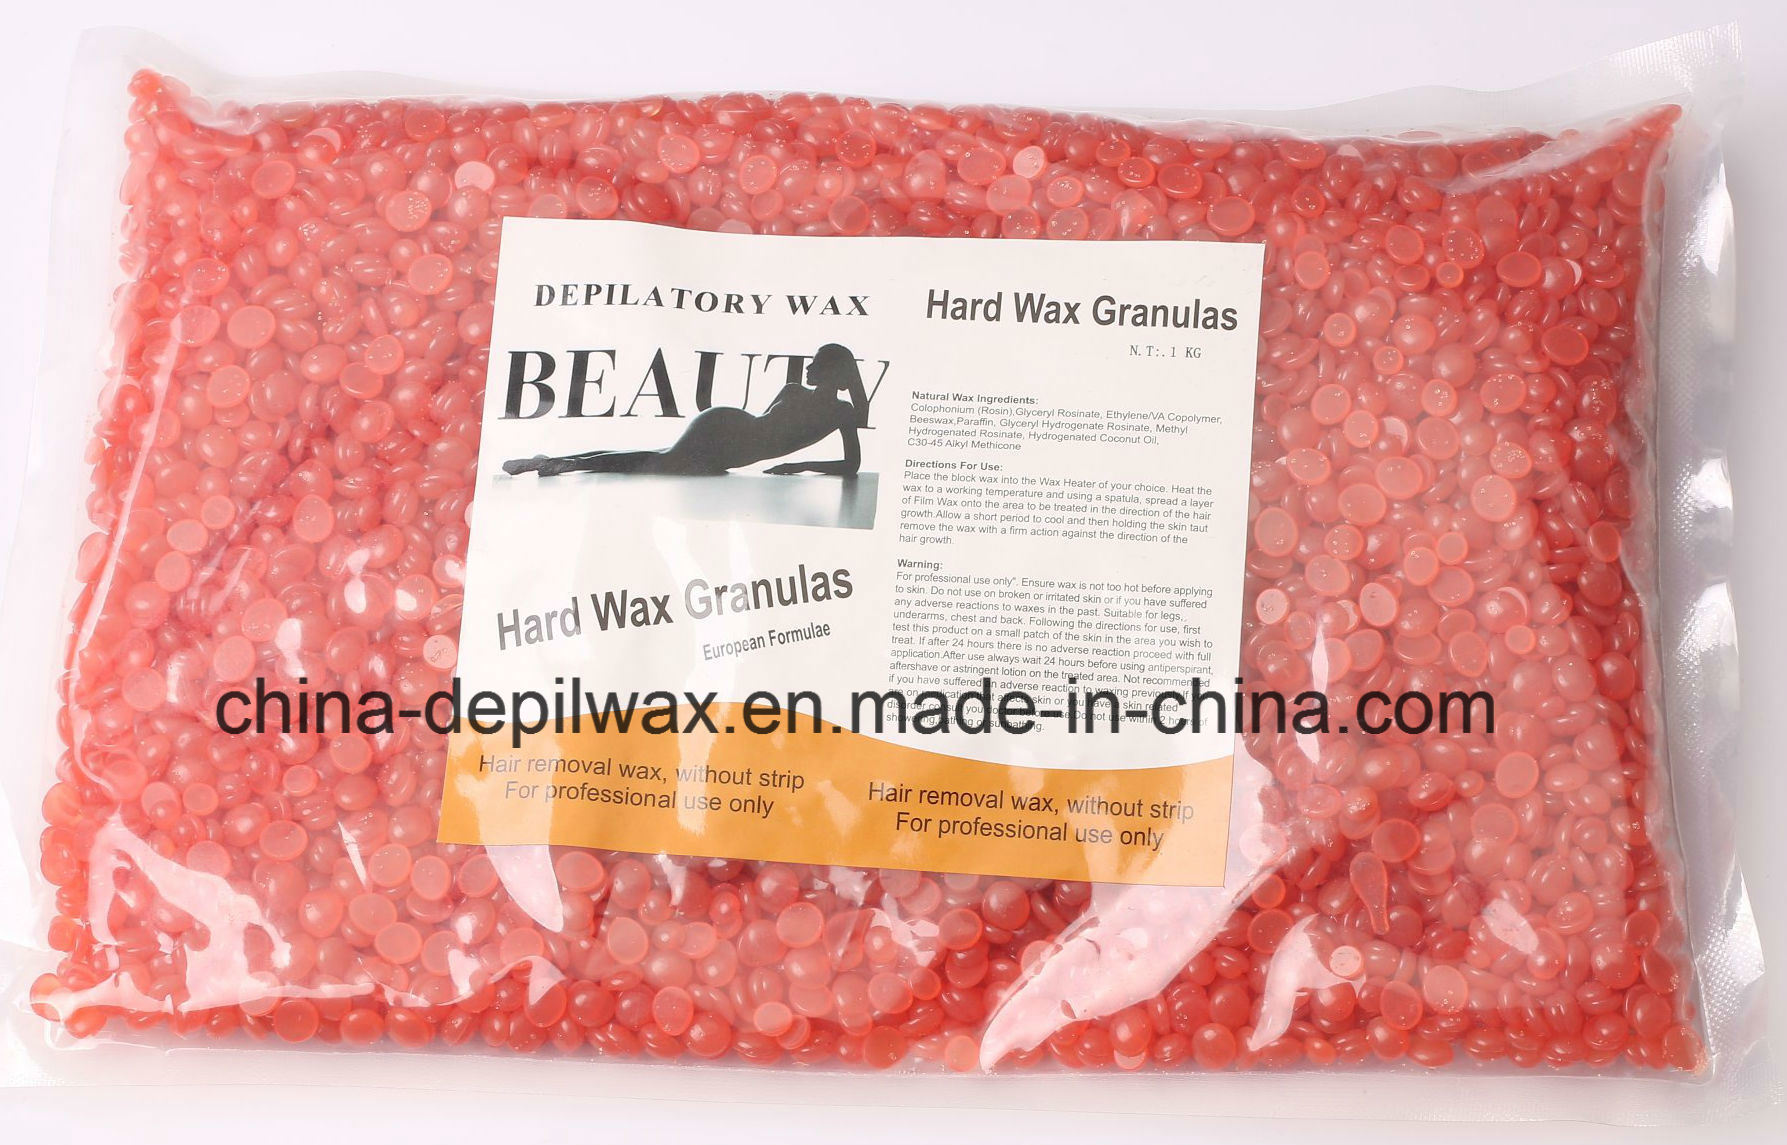 Azulene Dark Blue Hard Wax Pellets Depilatory Wax for Brazilian Waxing